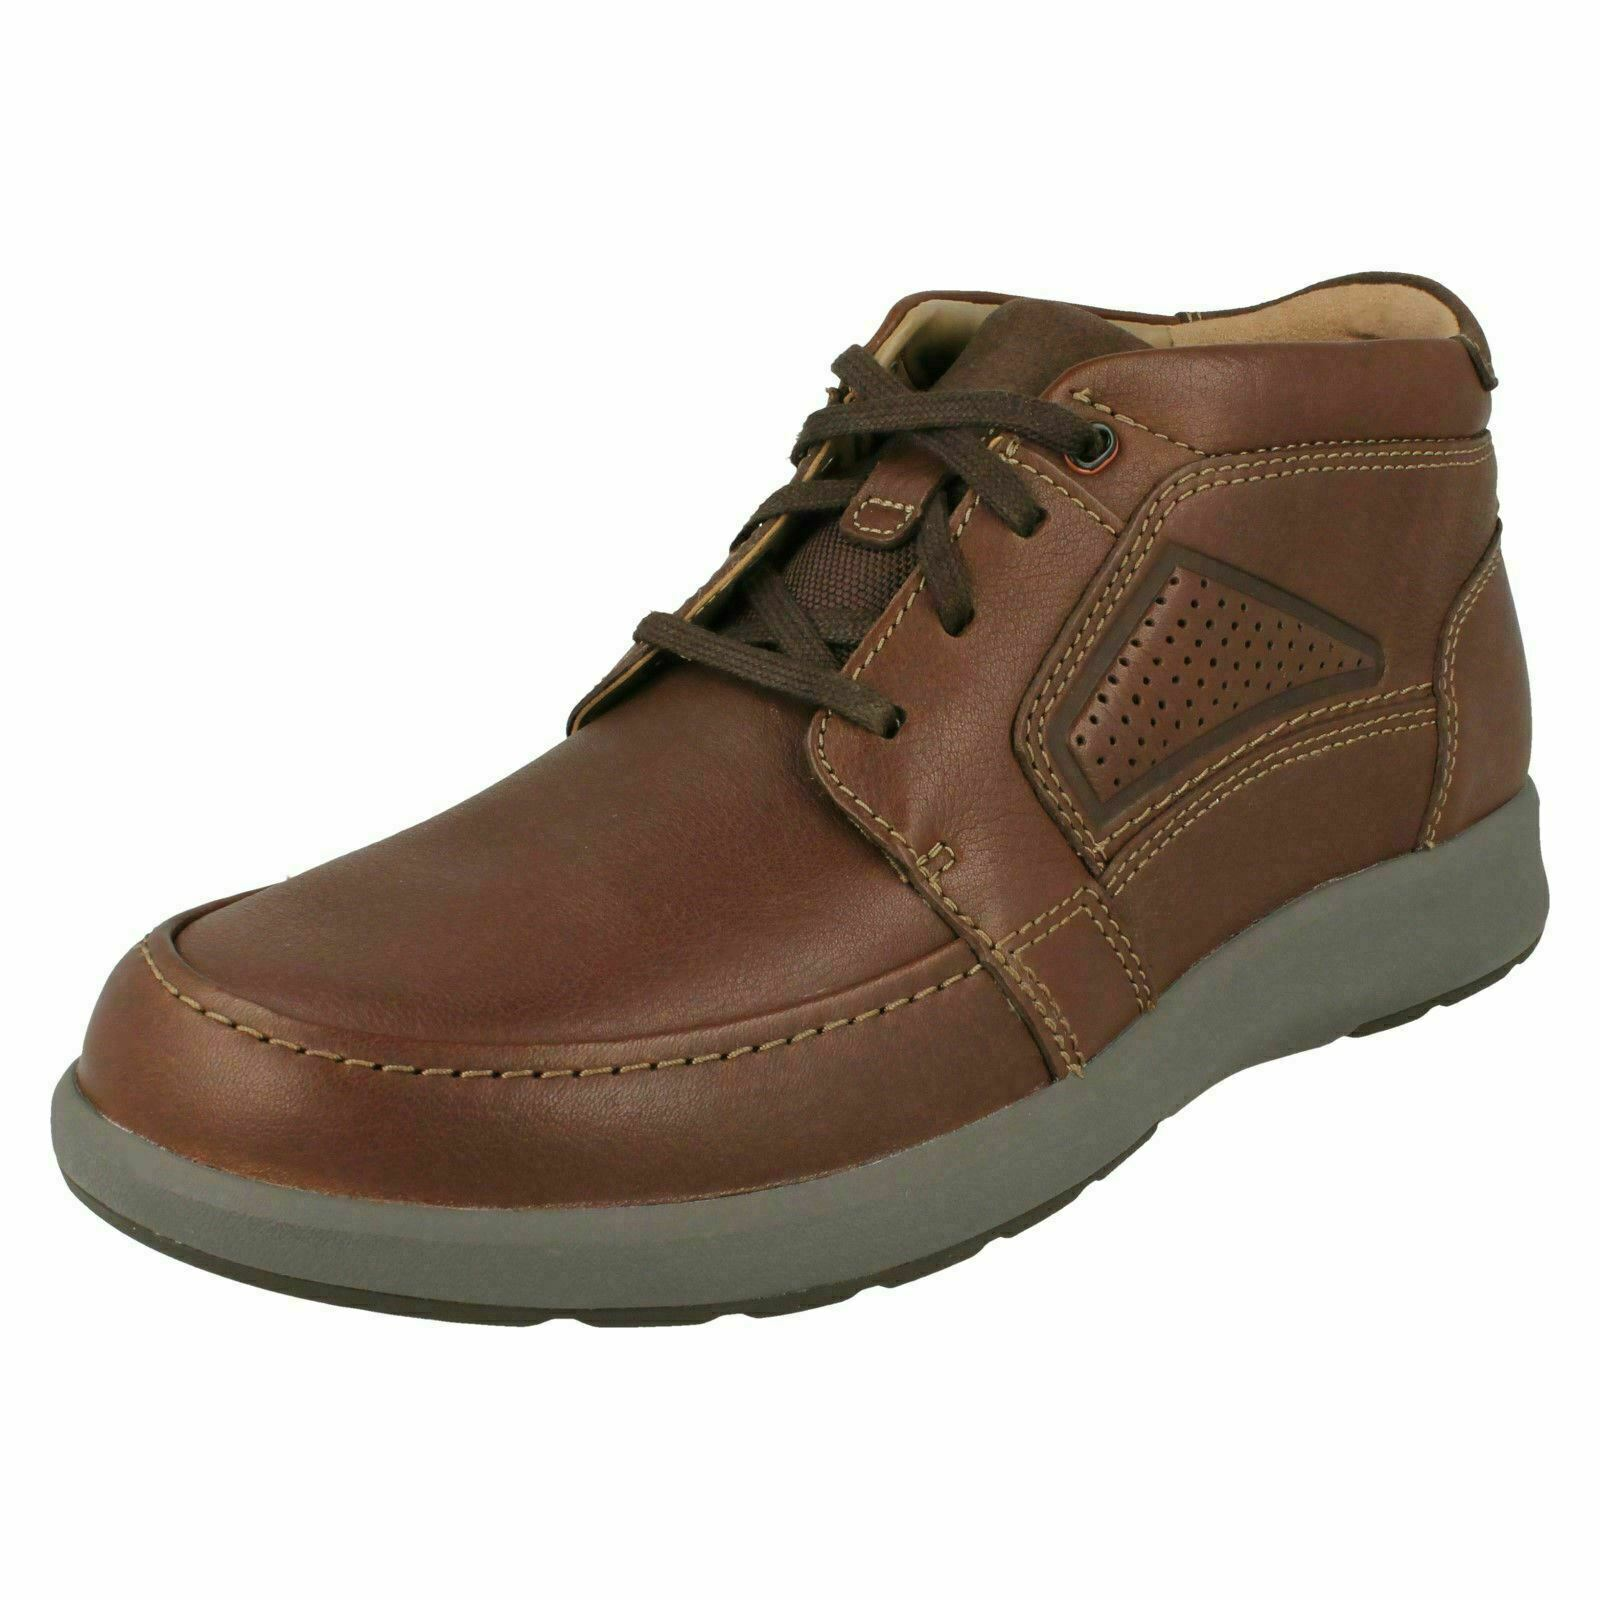 Mens Clarks Unstructurot 'Un Trail Limit' Leather Casual Lace Up Stiefel G Fitting